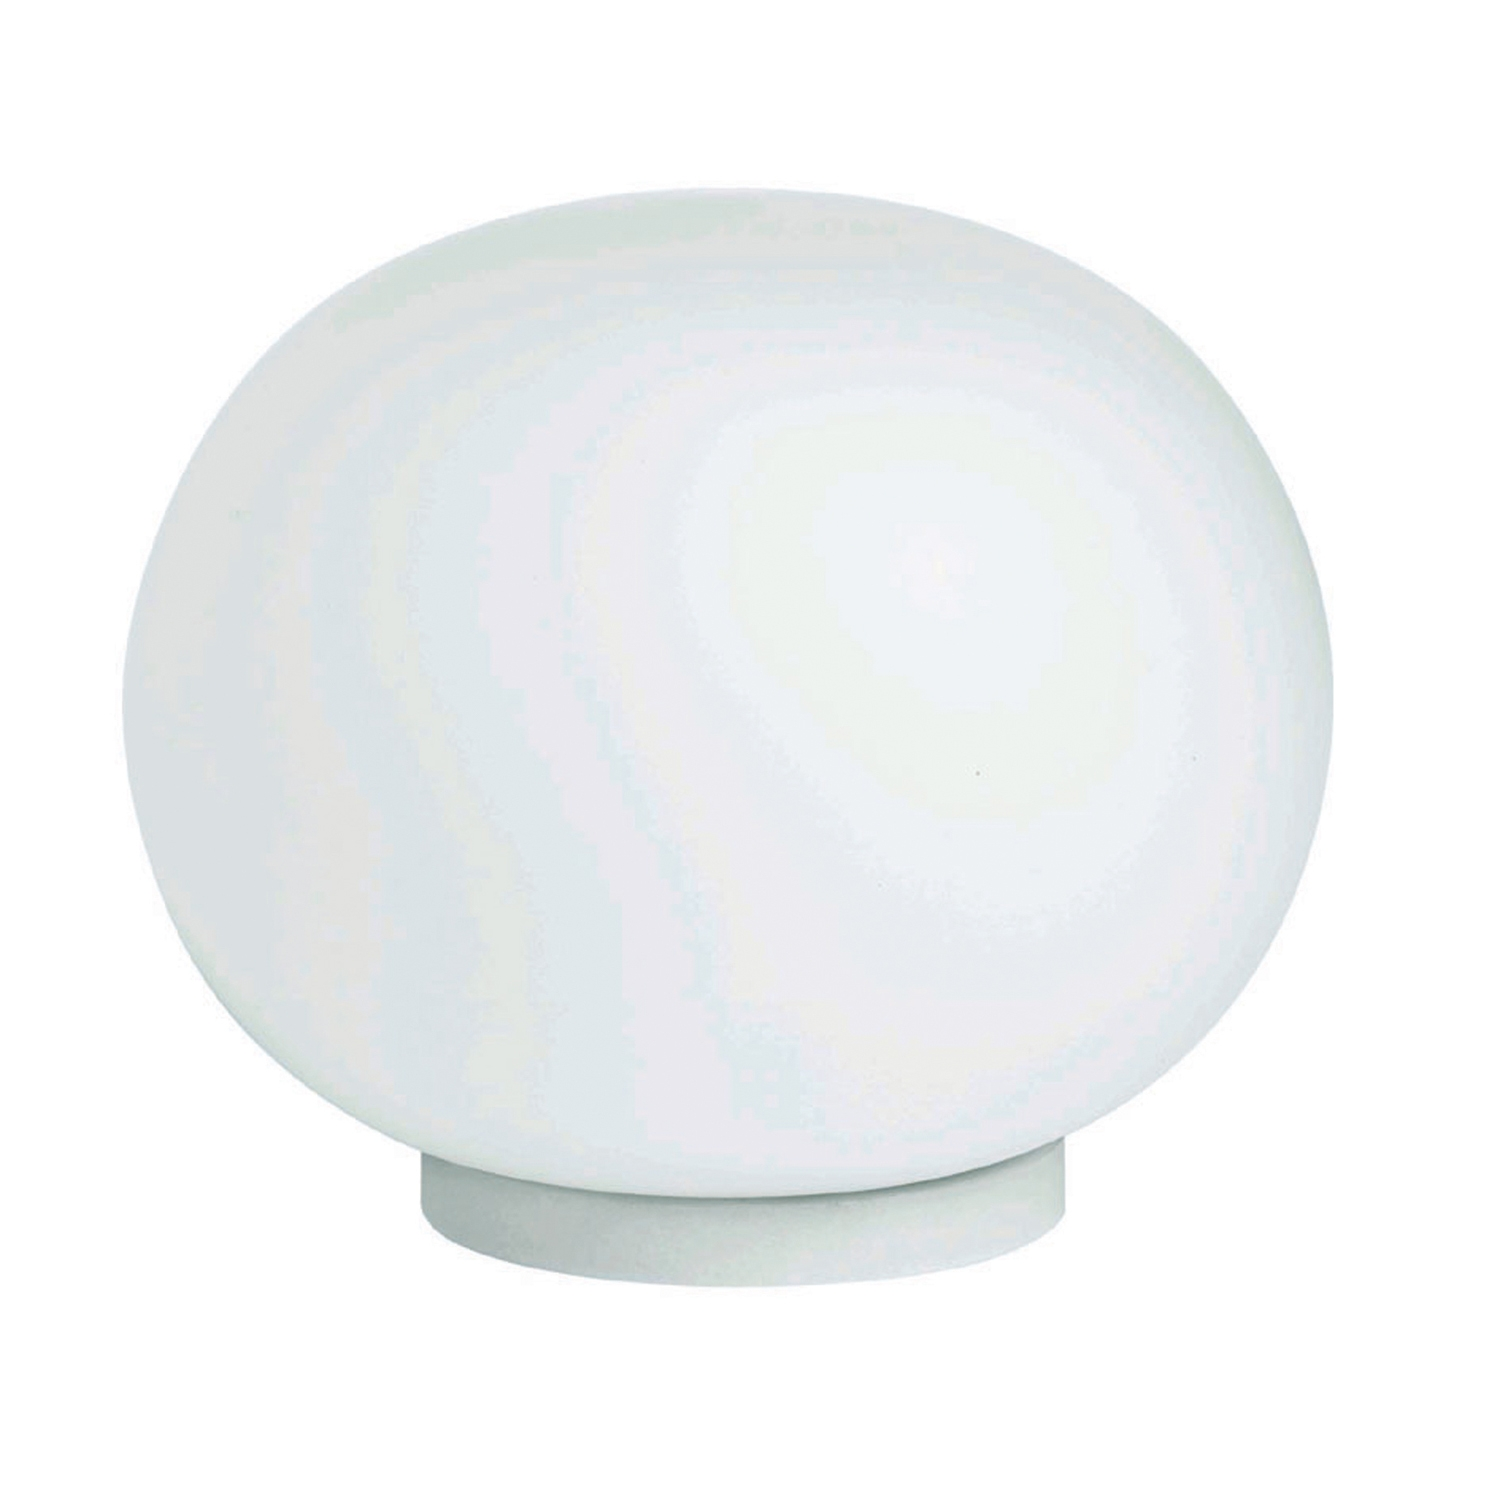 Mini Glo Ball T Bordslampa Dimmer Jasper Morrison Flos